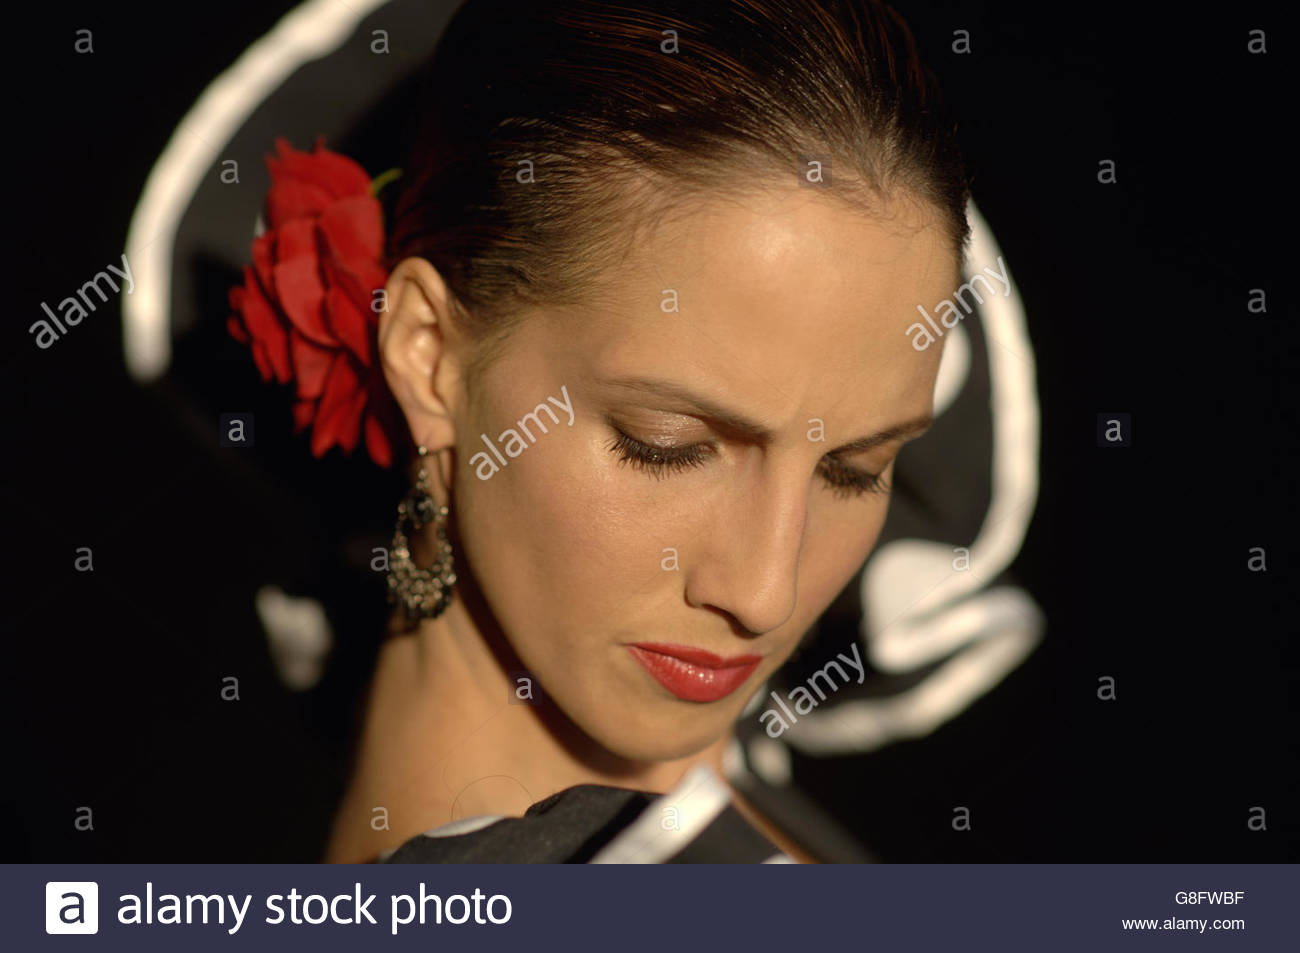 Portrait of a young woman with a flower pinned in her hair - Stock Image